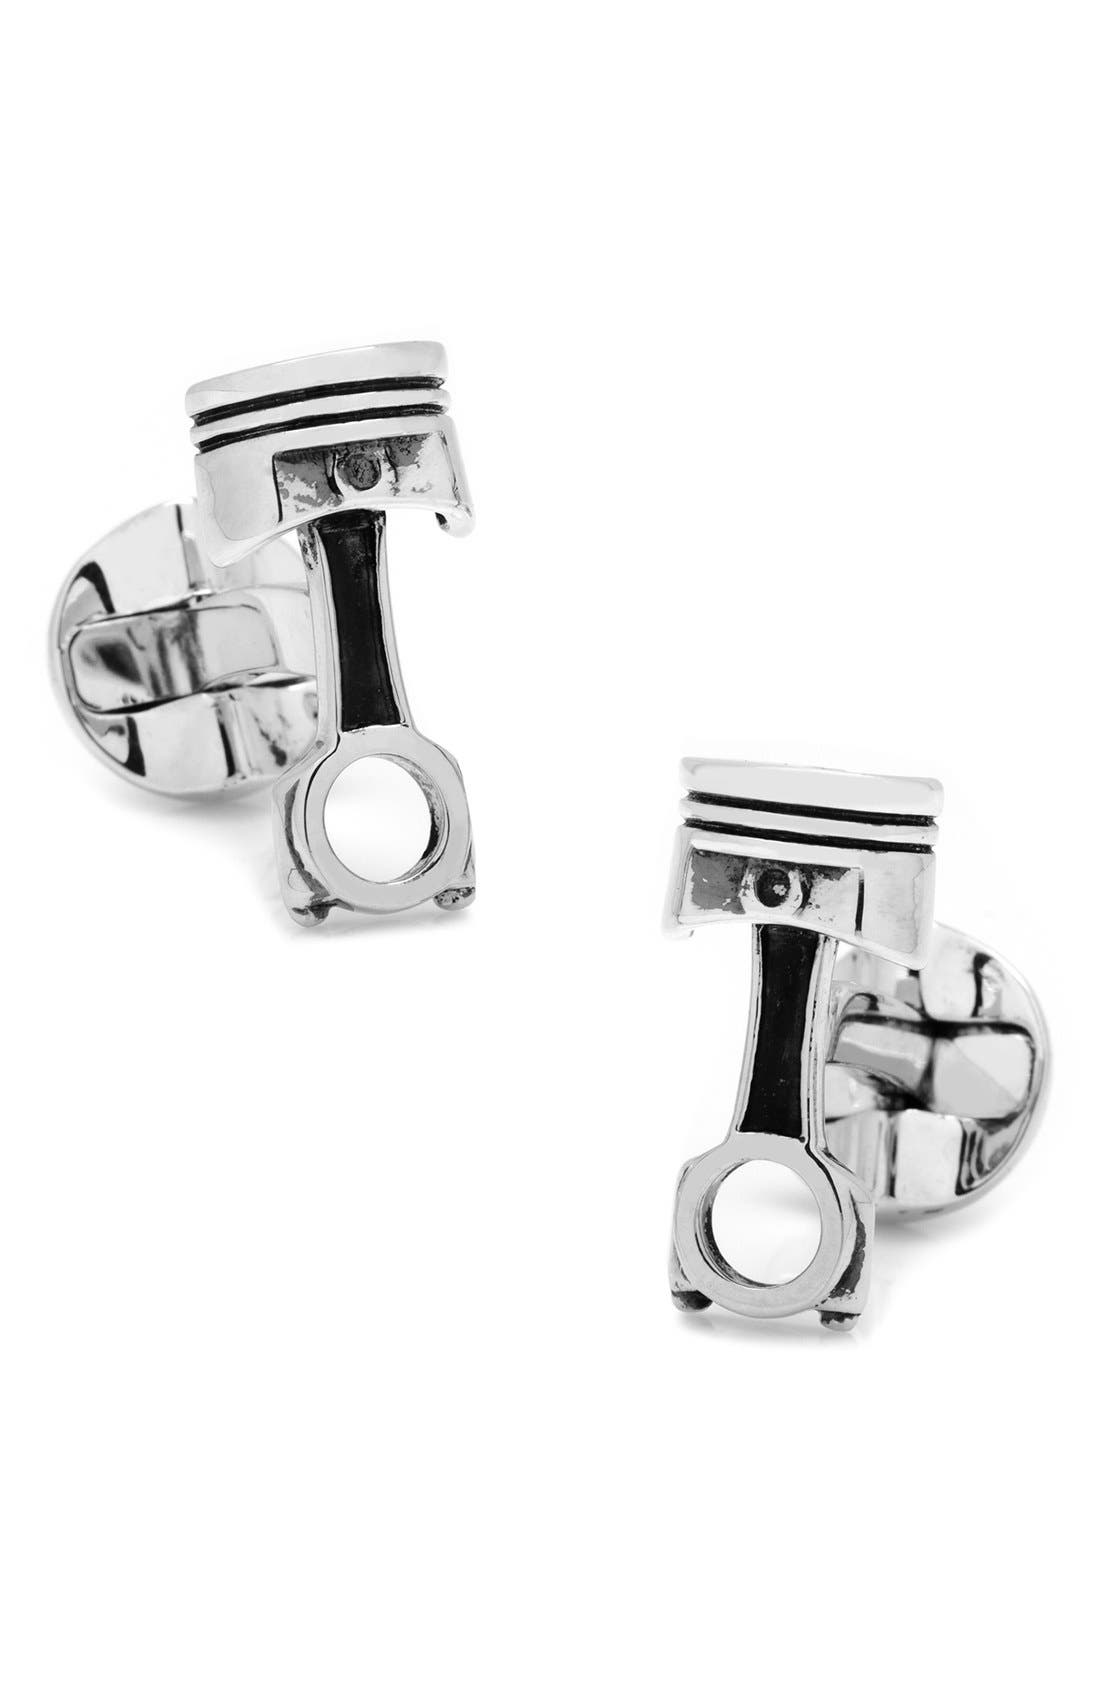 Main Image - Ox and Bull Trading Co. Piston Cuff Links